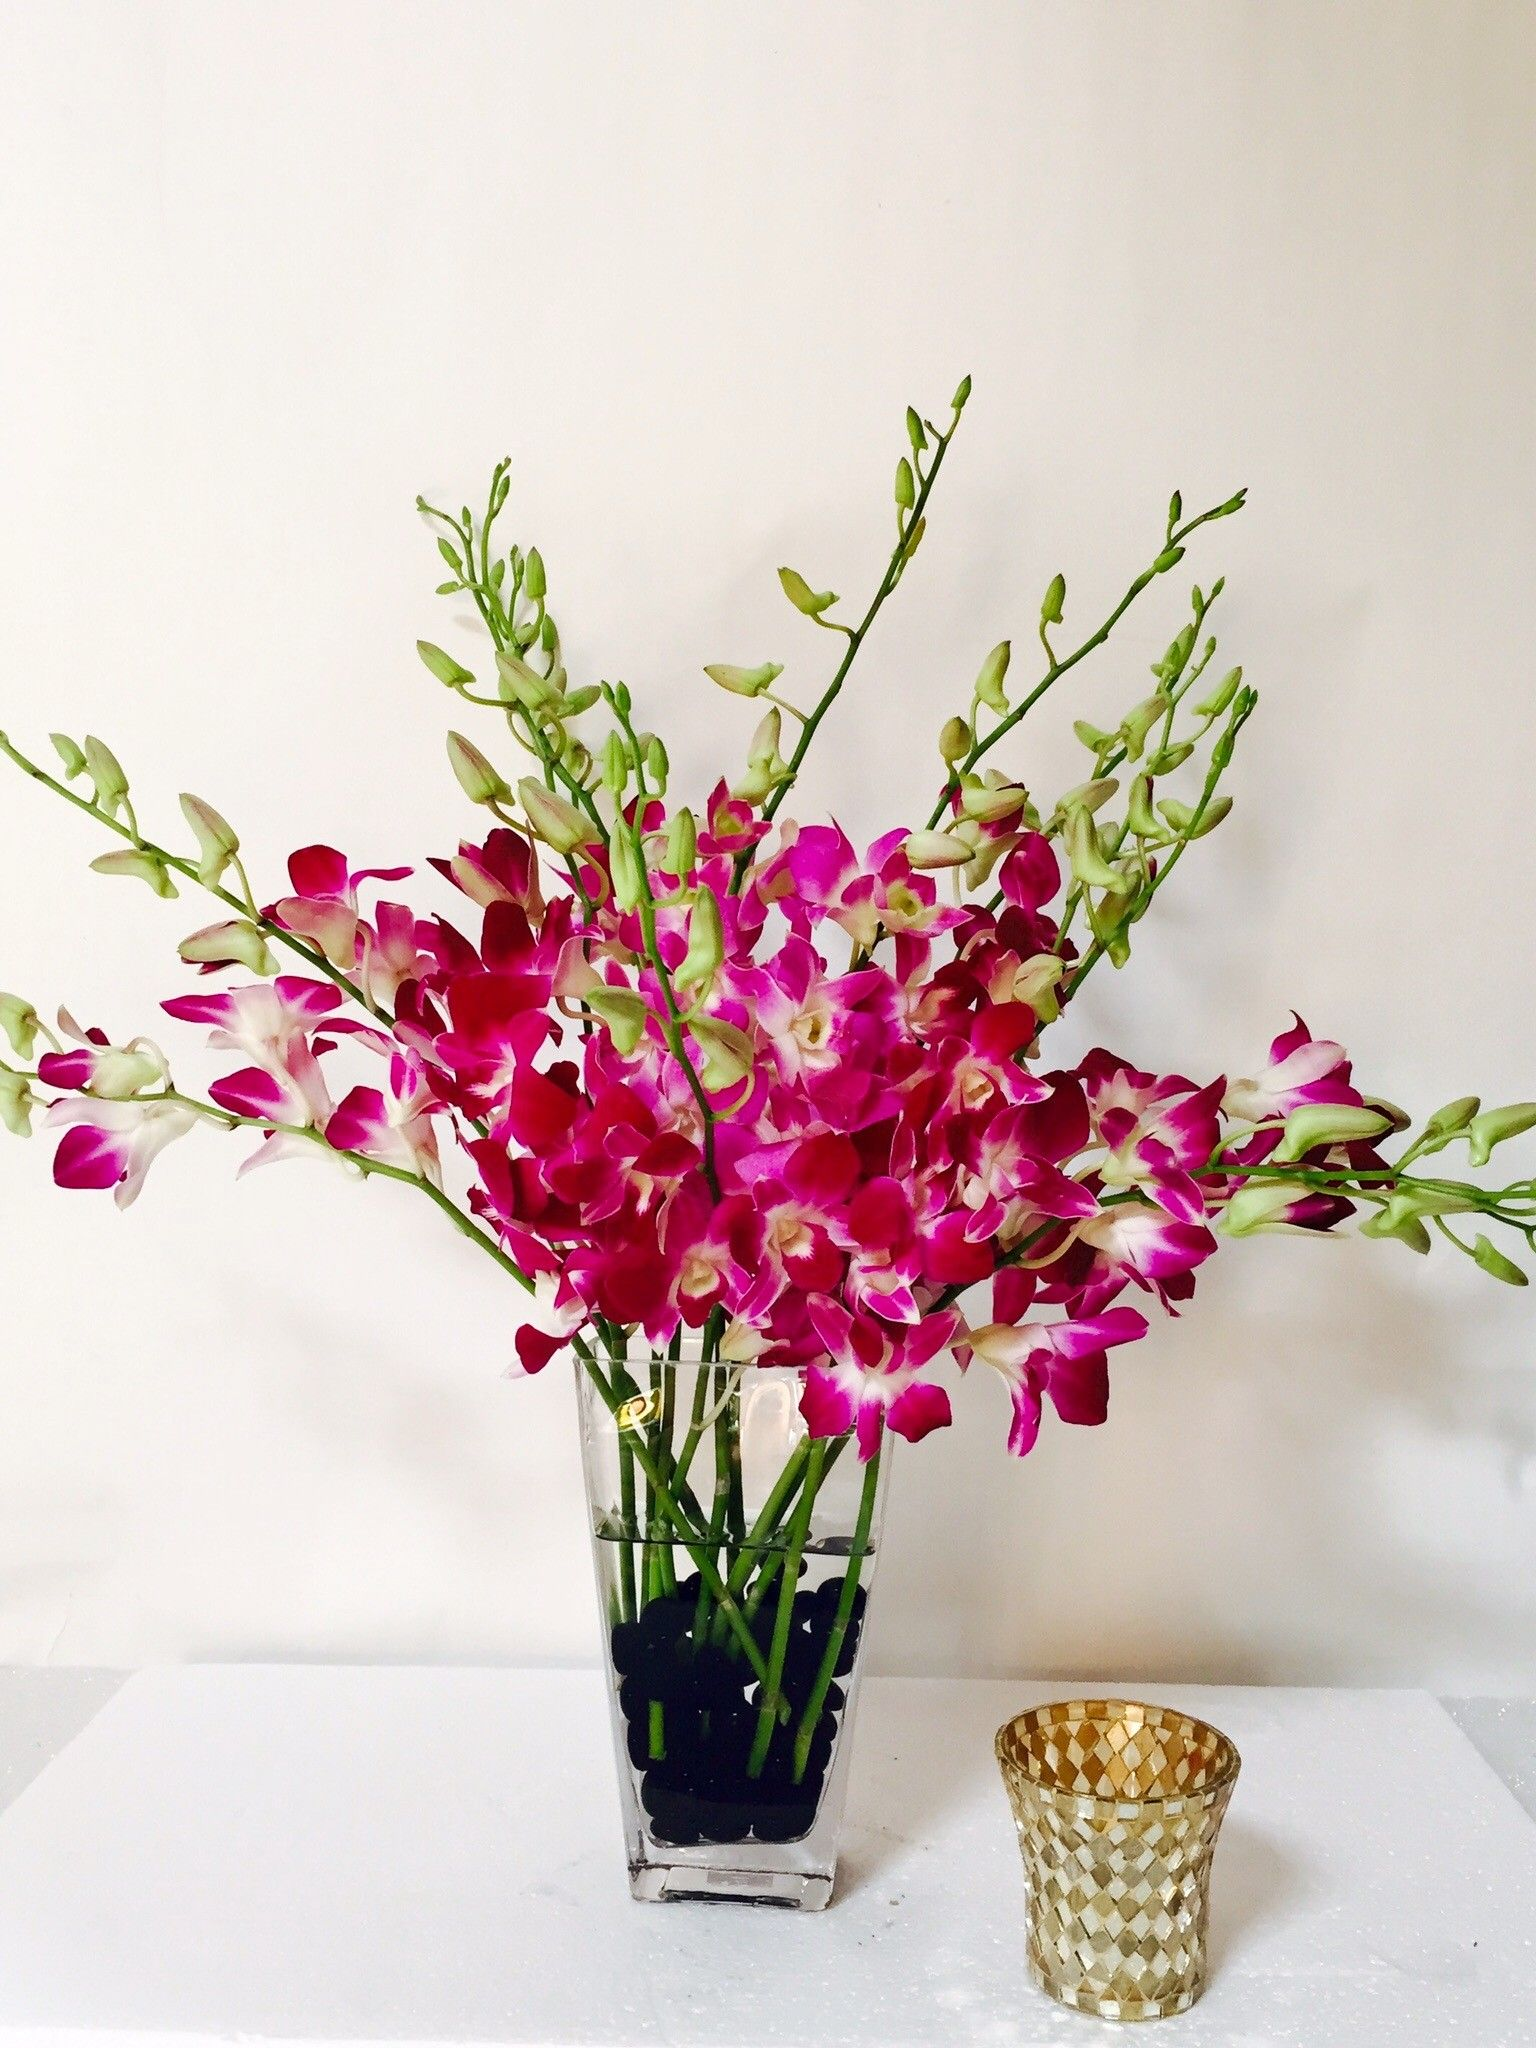 Send The Orchid Spray Bouquet Of Flowers From Jane S Roses Local Fresh Flower Delivery Directly From The Florist And Never I Slow Flower Fresh Flower Delivery